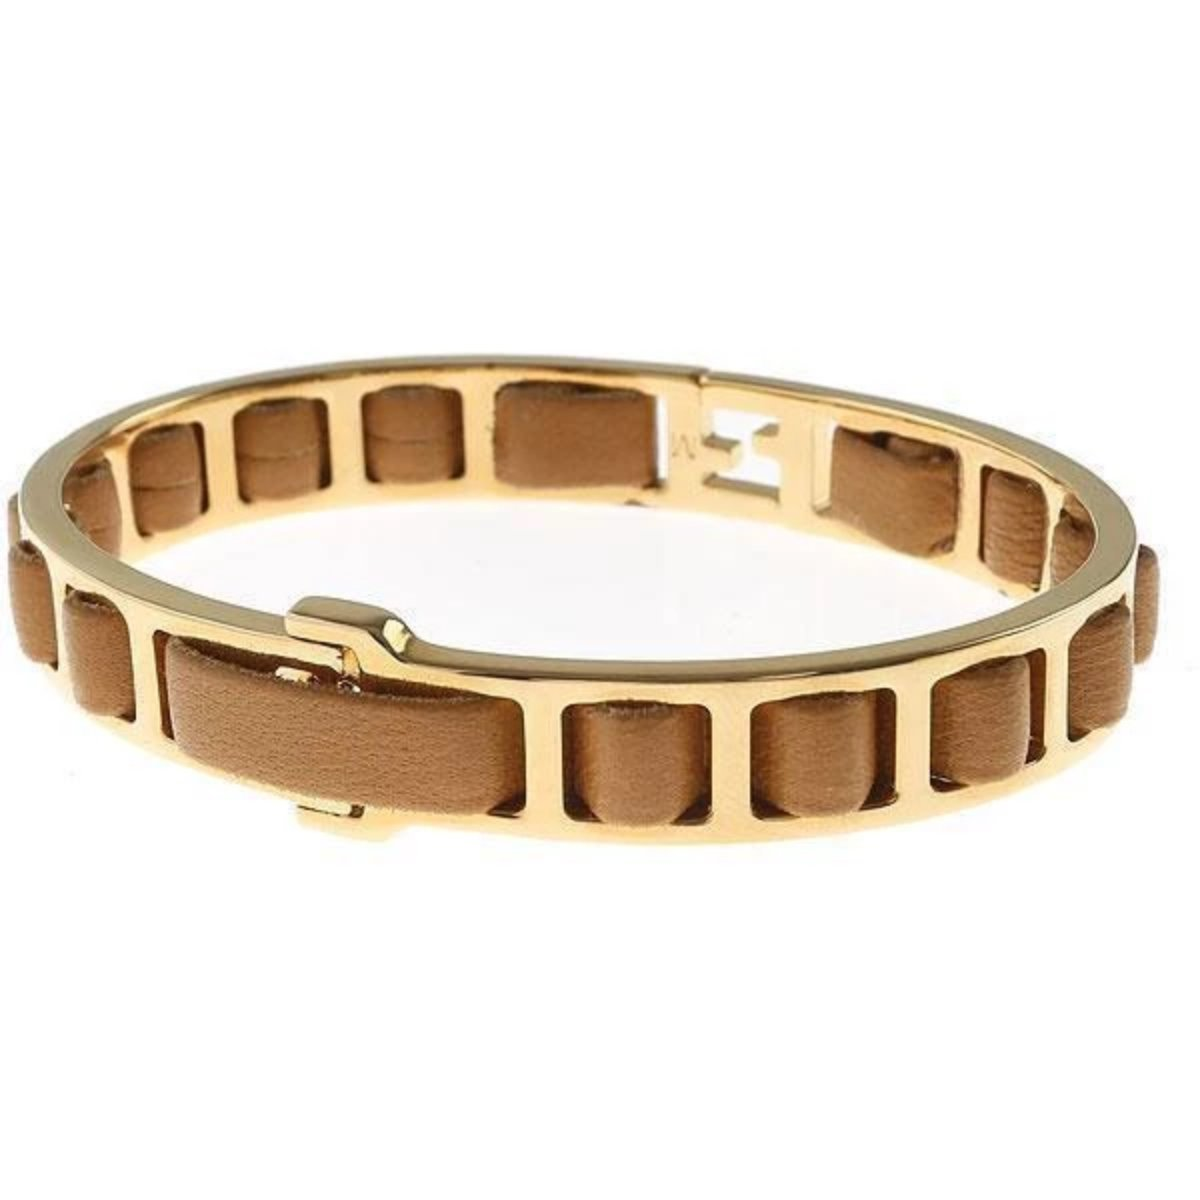 Fendi FF Fendista Logo Brown Leather Woven Bangle Bracelet Gold Hardware